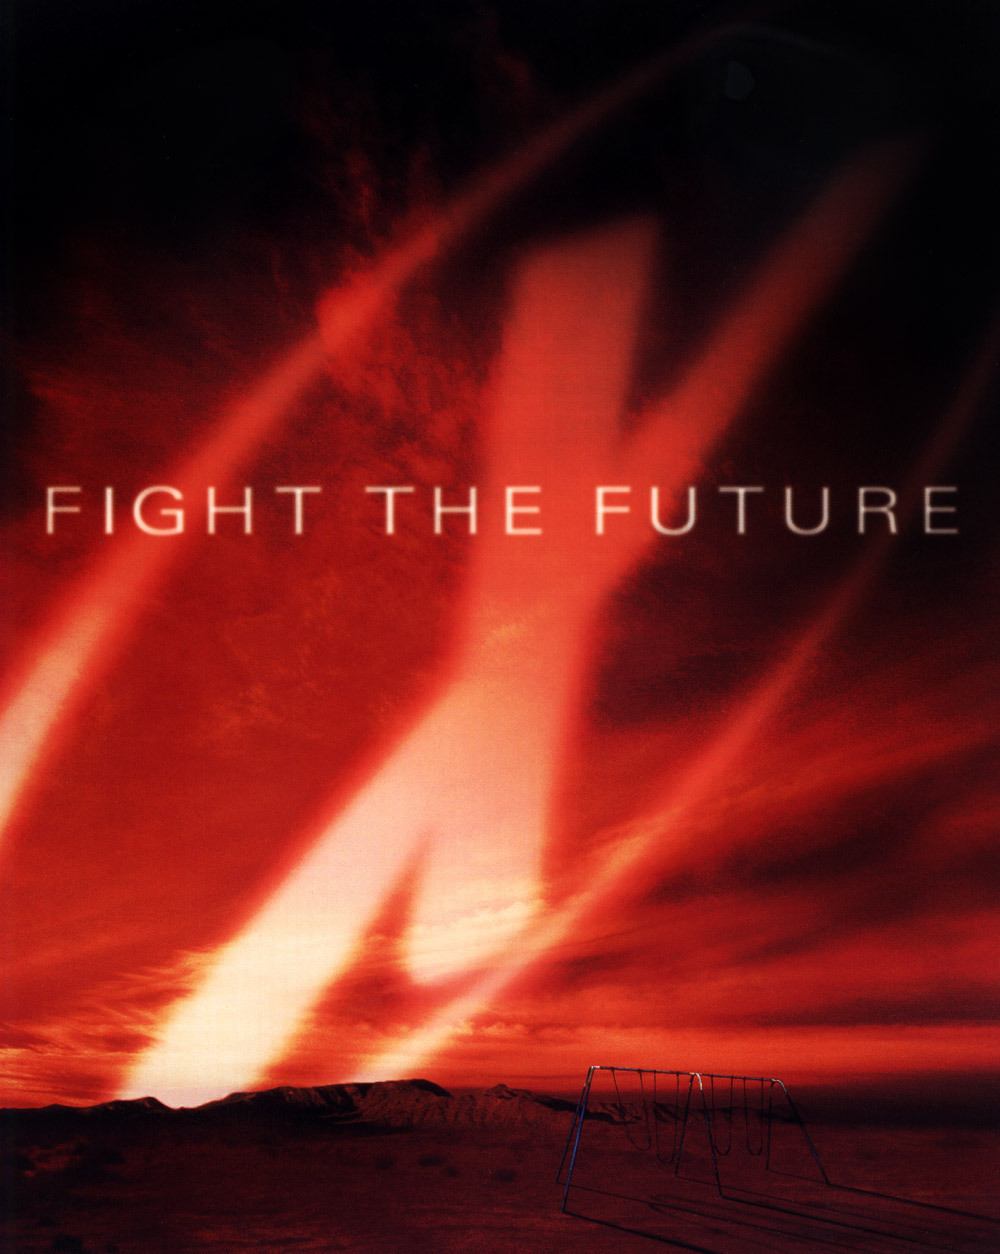 thex files fightthefuture clictoa